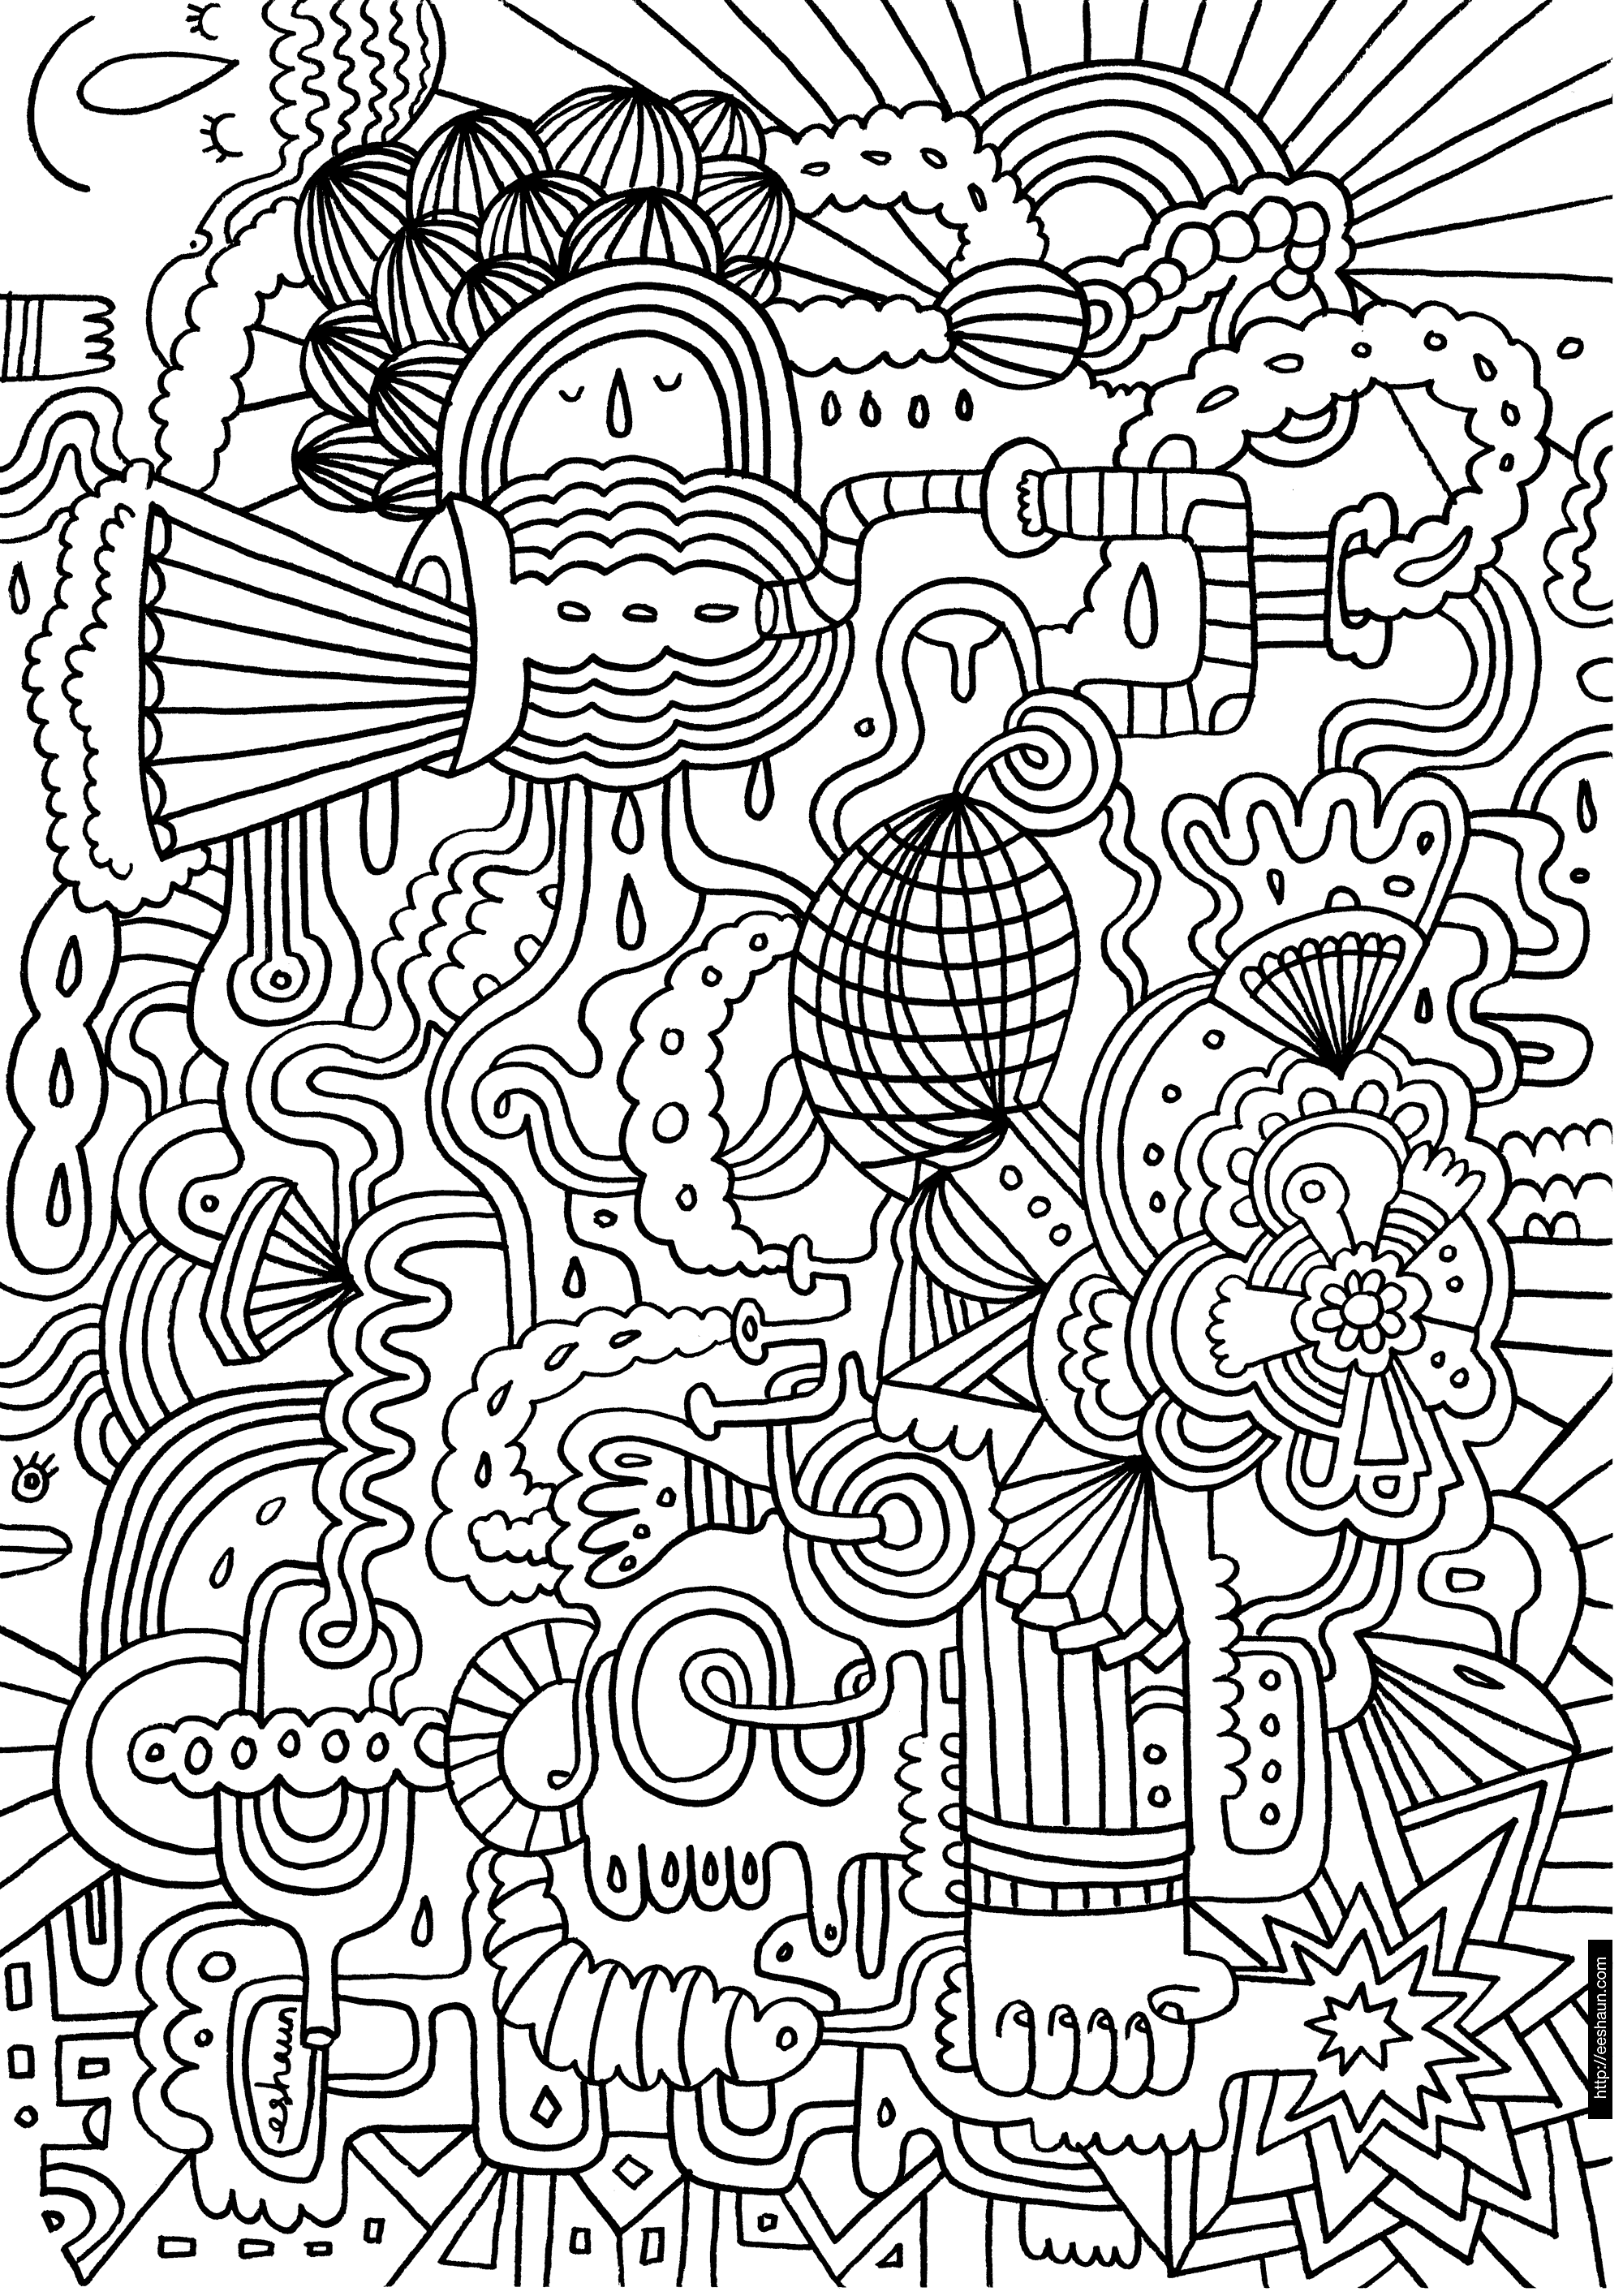 coloring pages | ... Coloring Pages In-patterns-coloring ...